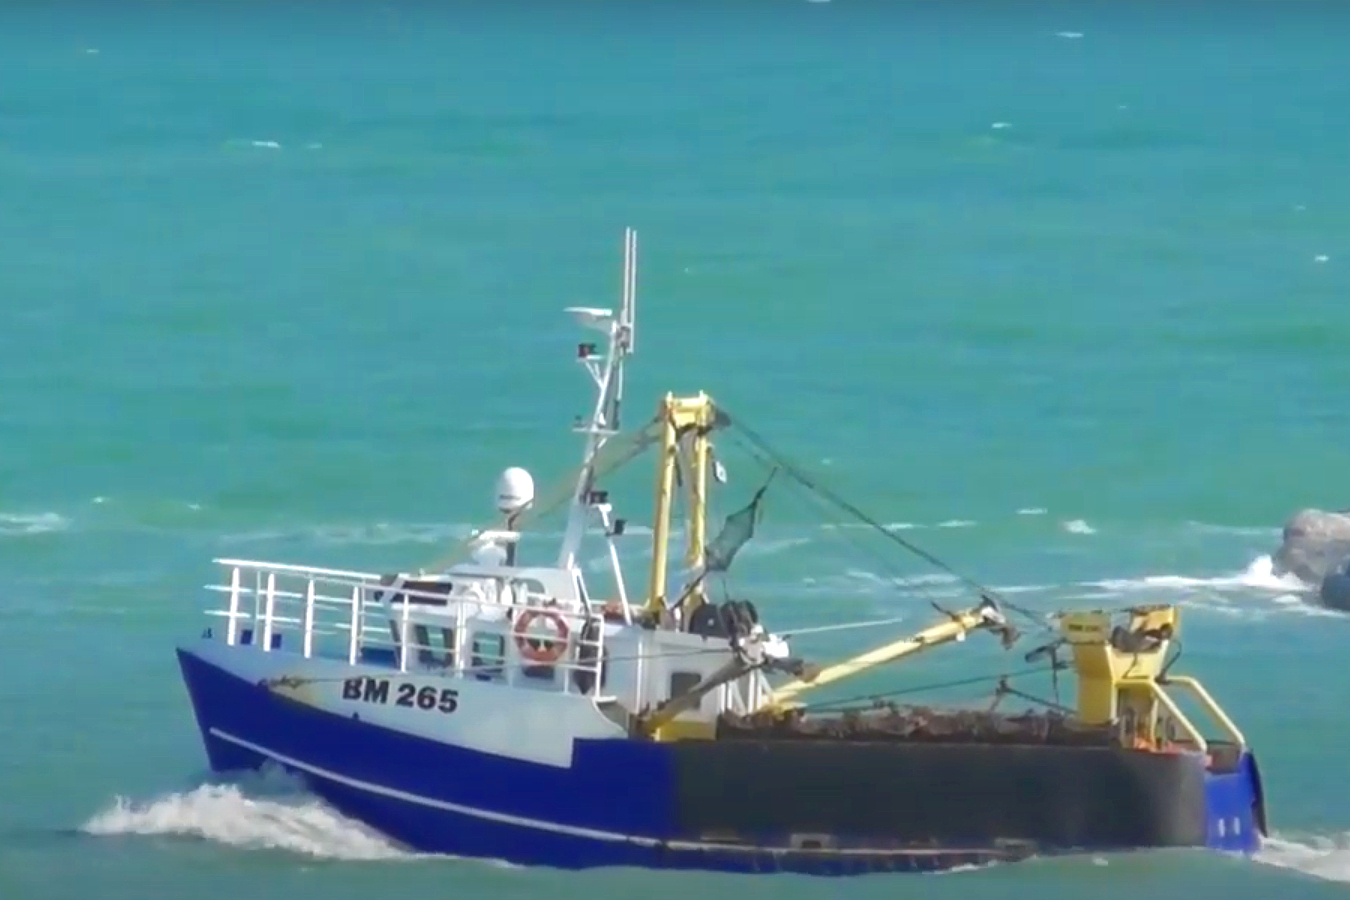 search scalloper joanna c terminated